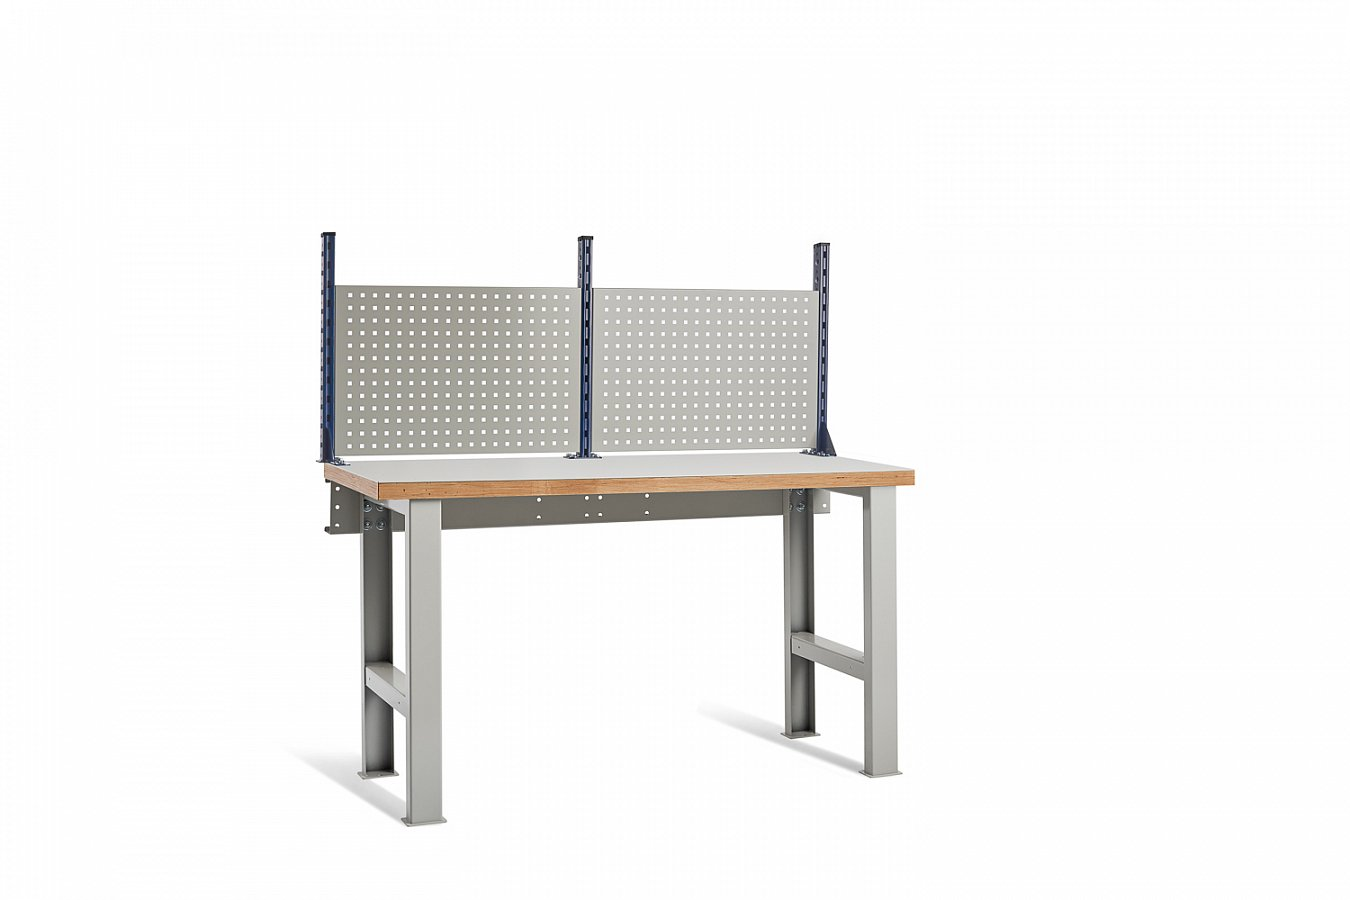 DiKom Workbench VS-150-01 (3)